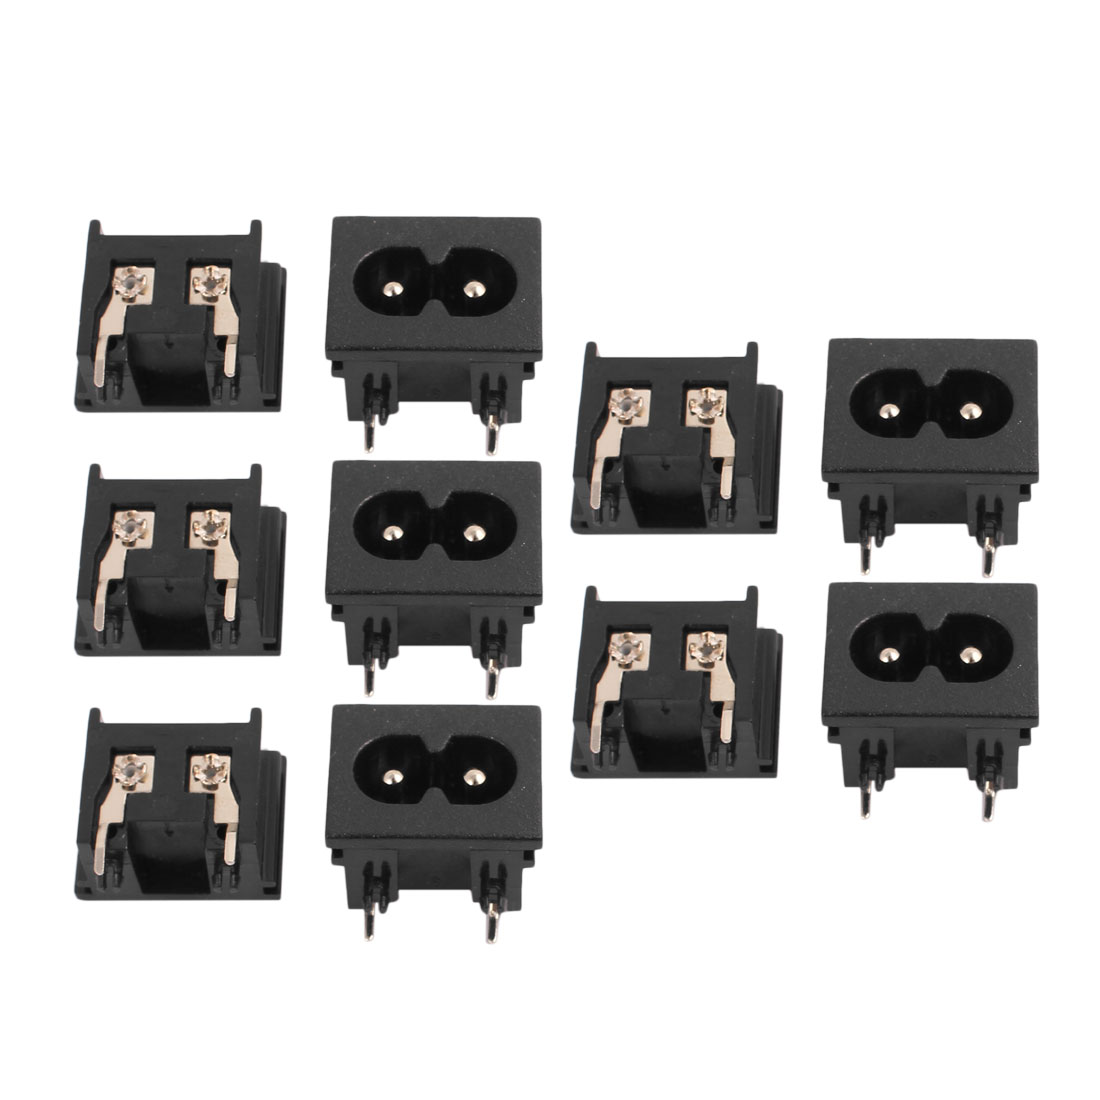 AC250V 2.5A BX-180-A05 IEC AC Input Wiring Socket 2 Pins Copper Rhodium Power 10 Pcs